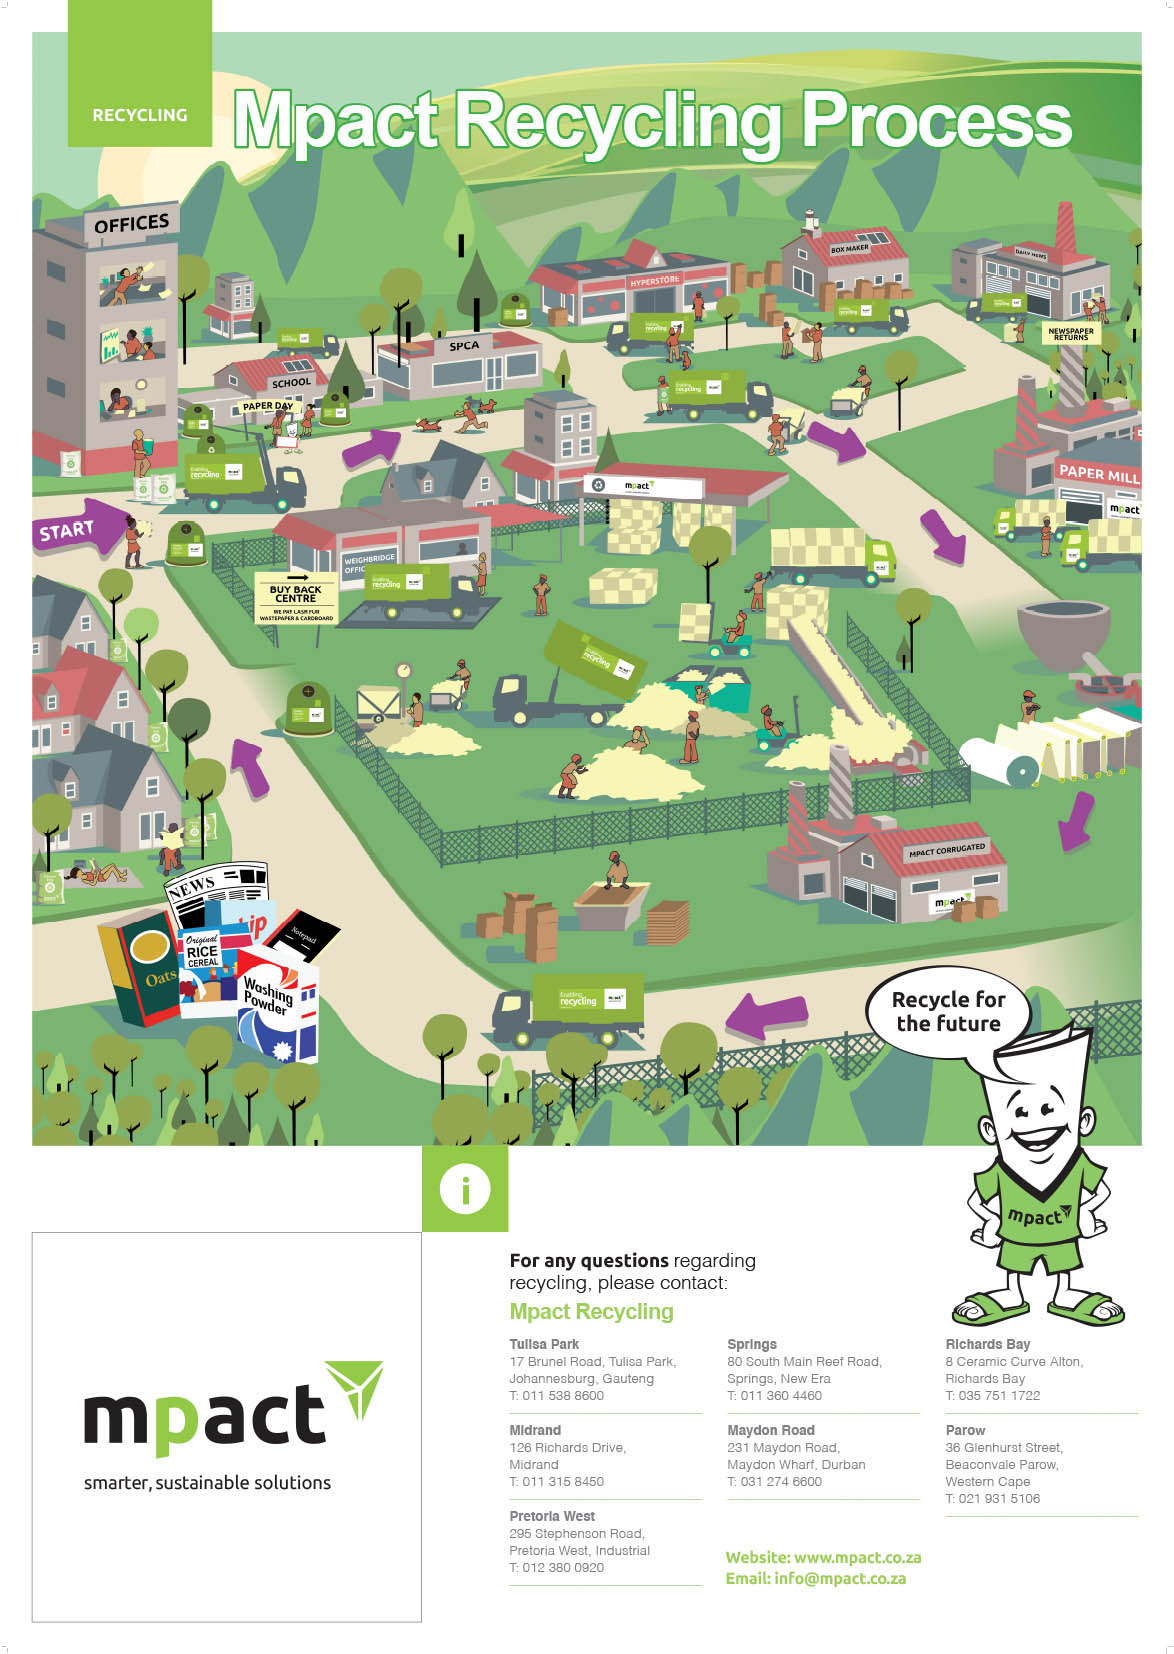 Mpact Recycling Shools Poster_LARGE.jpg